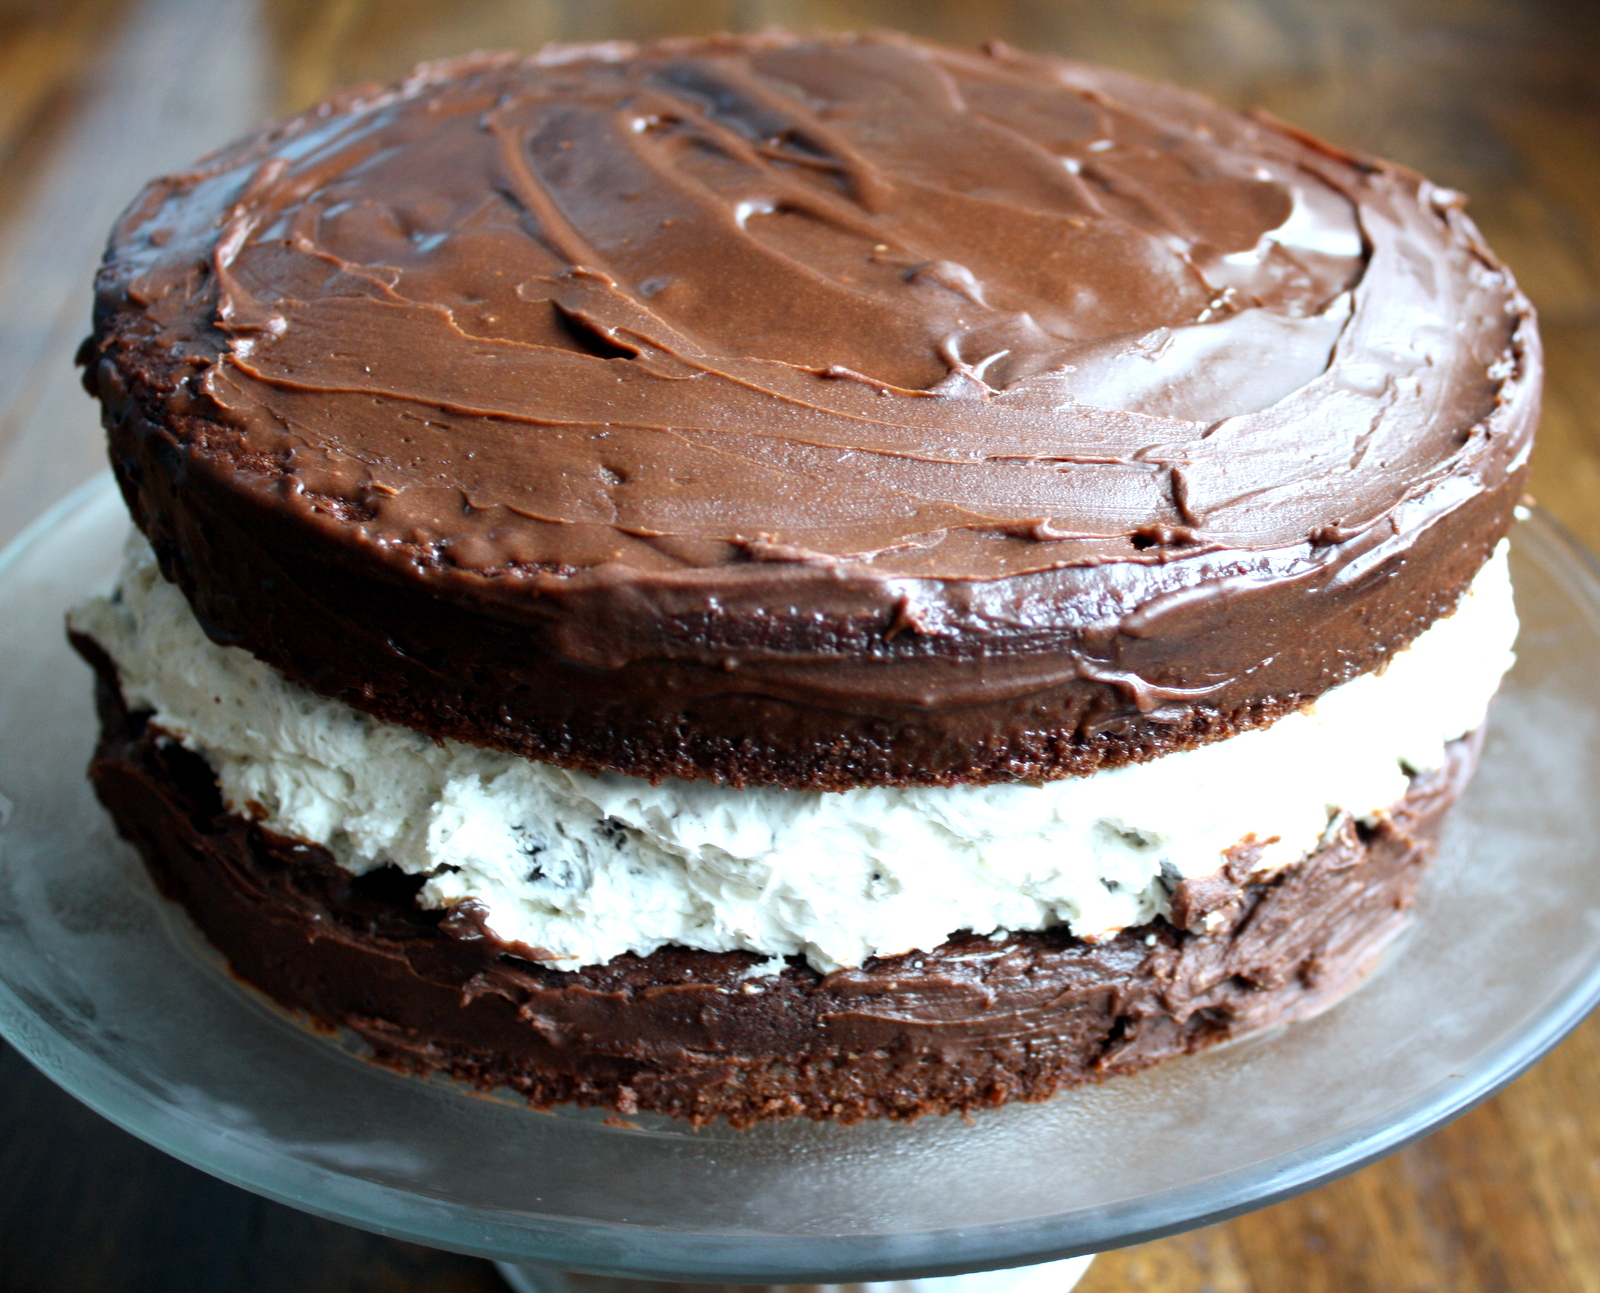 Manila Spoon: Giant Oreo Cookie Cake